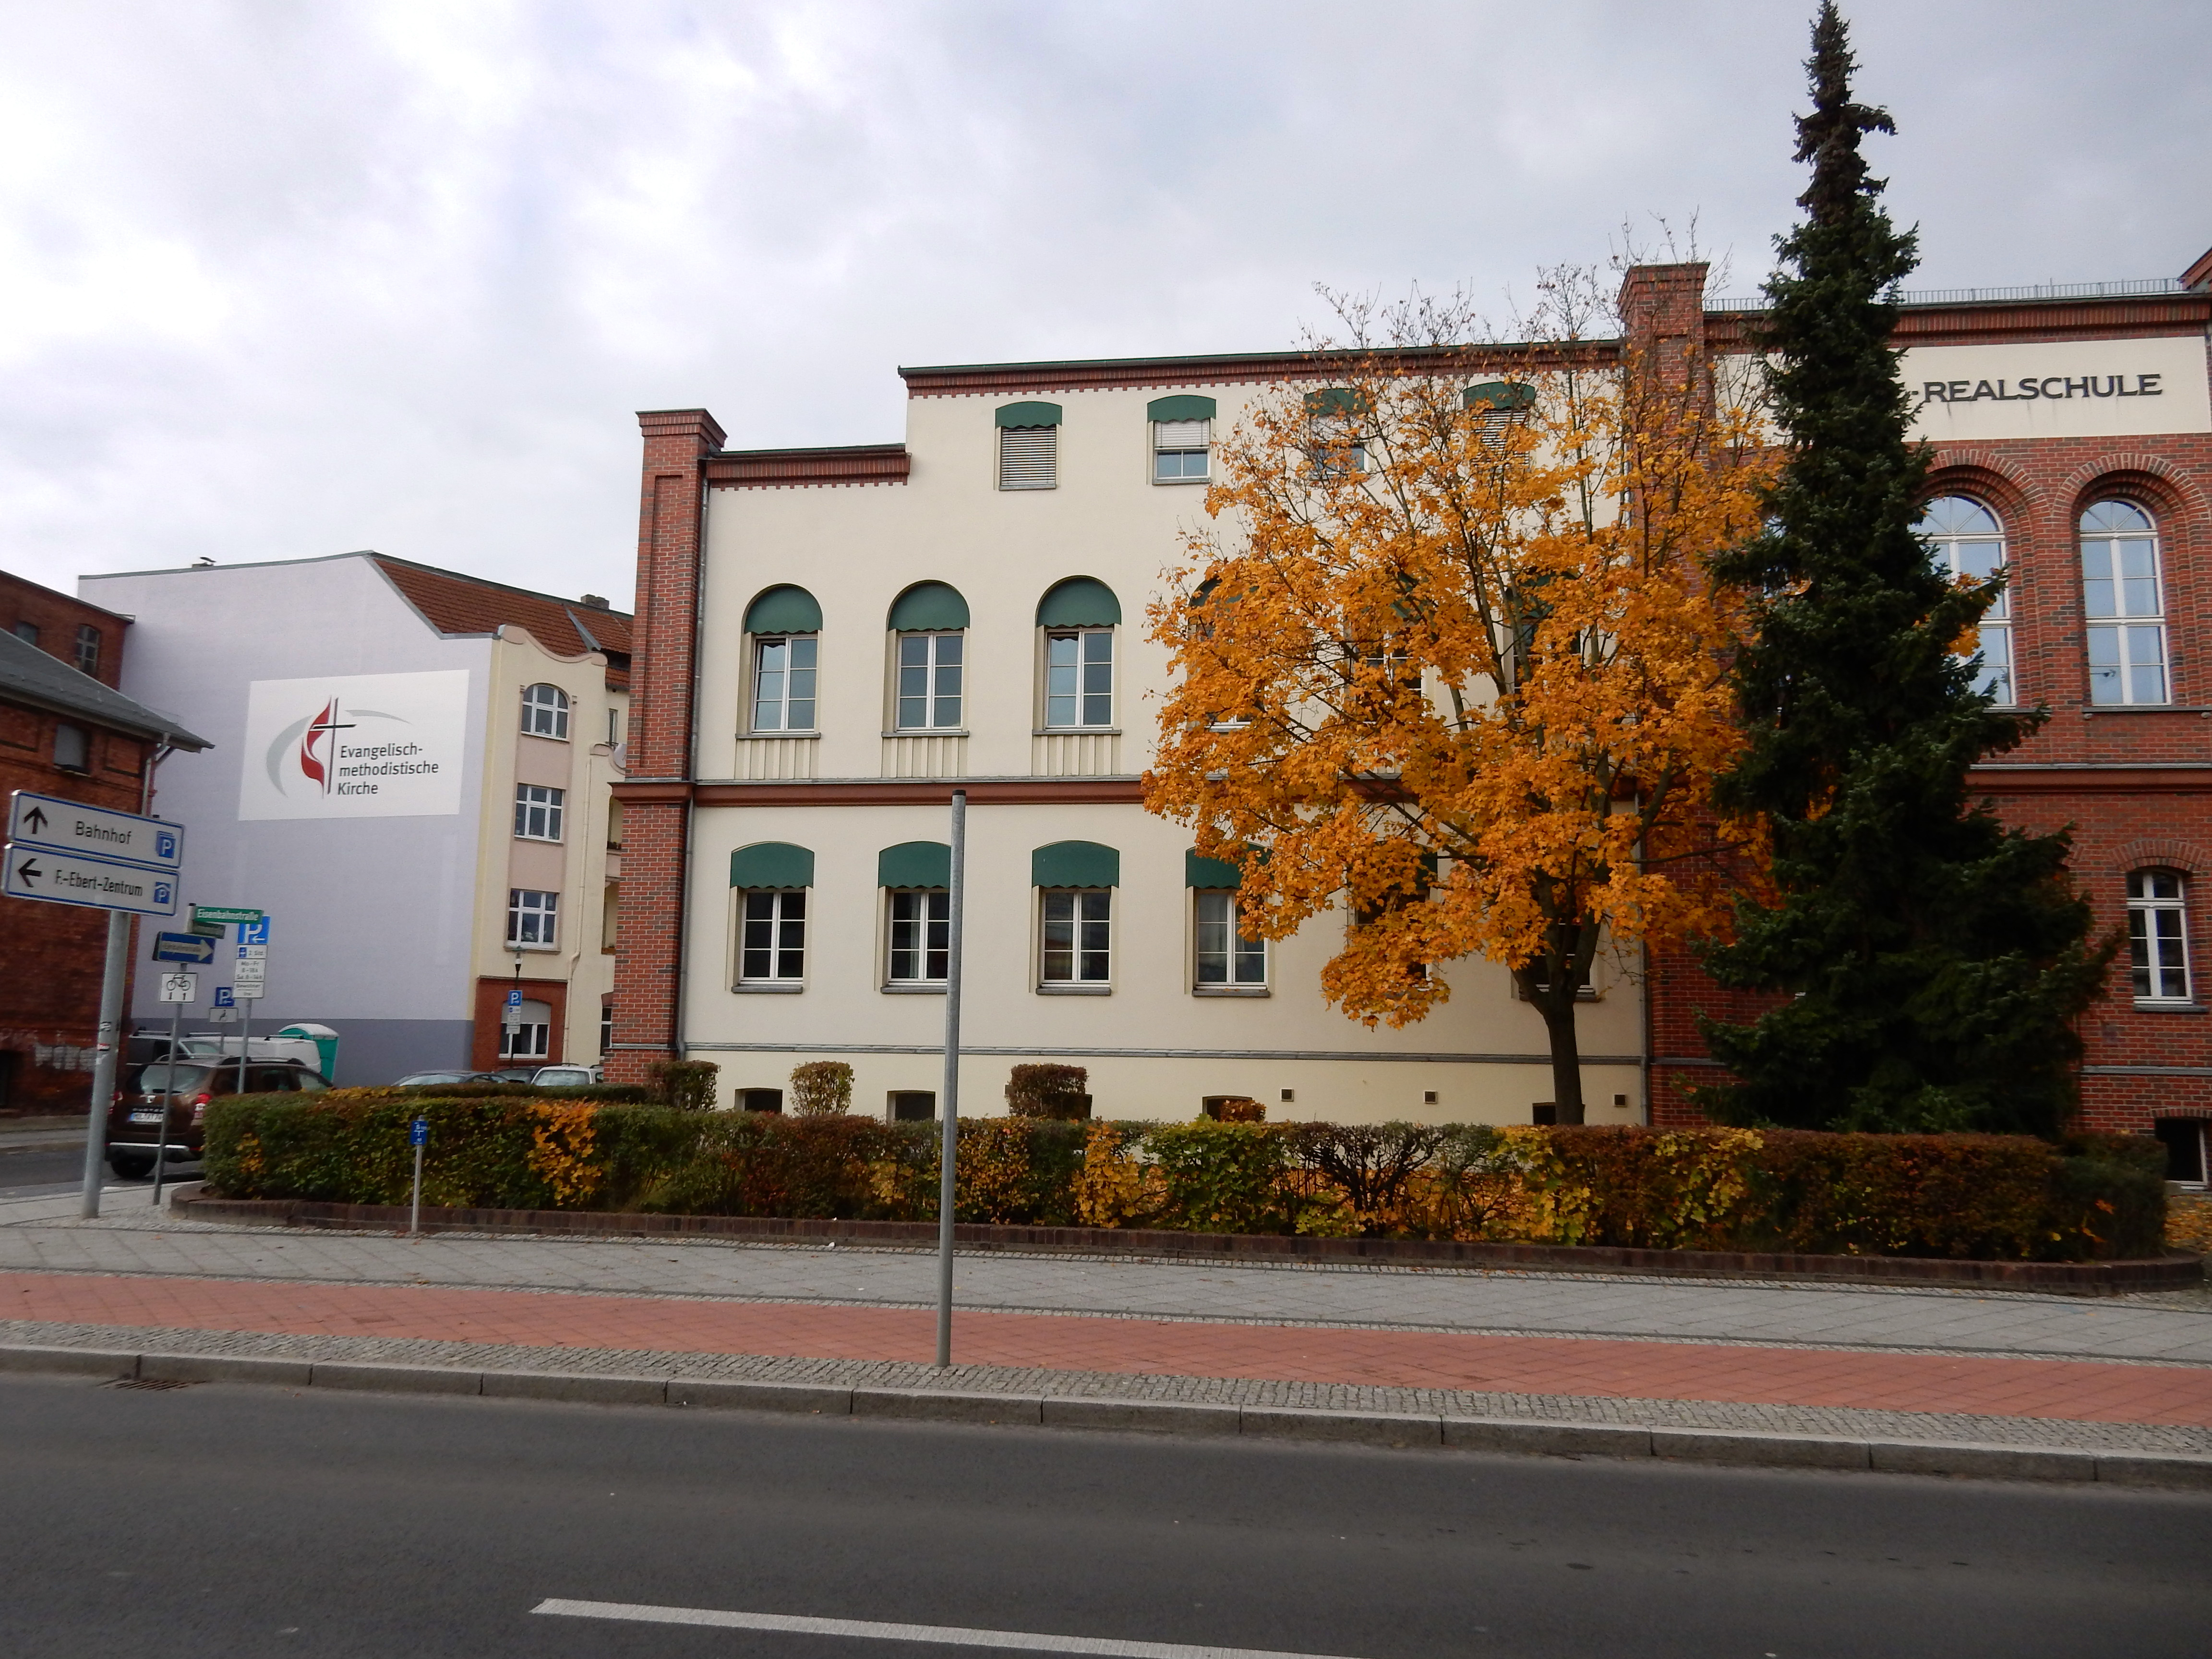 Immanuel United Methodist Church, at left, stands across the street in Eberswalde, Germany, from a former school that now serves as an emergency shelter for migrants seeking asylum. Photo by the Rev. Anne-Marie Detjen